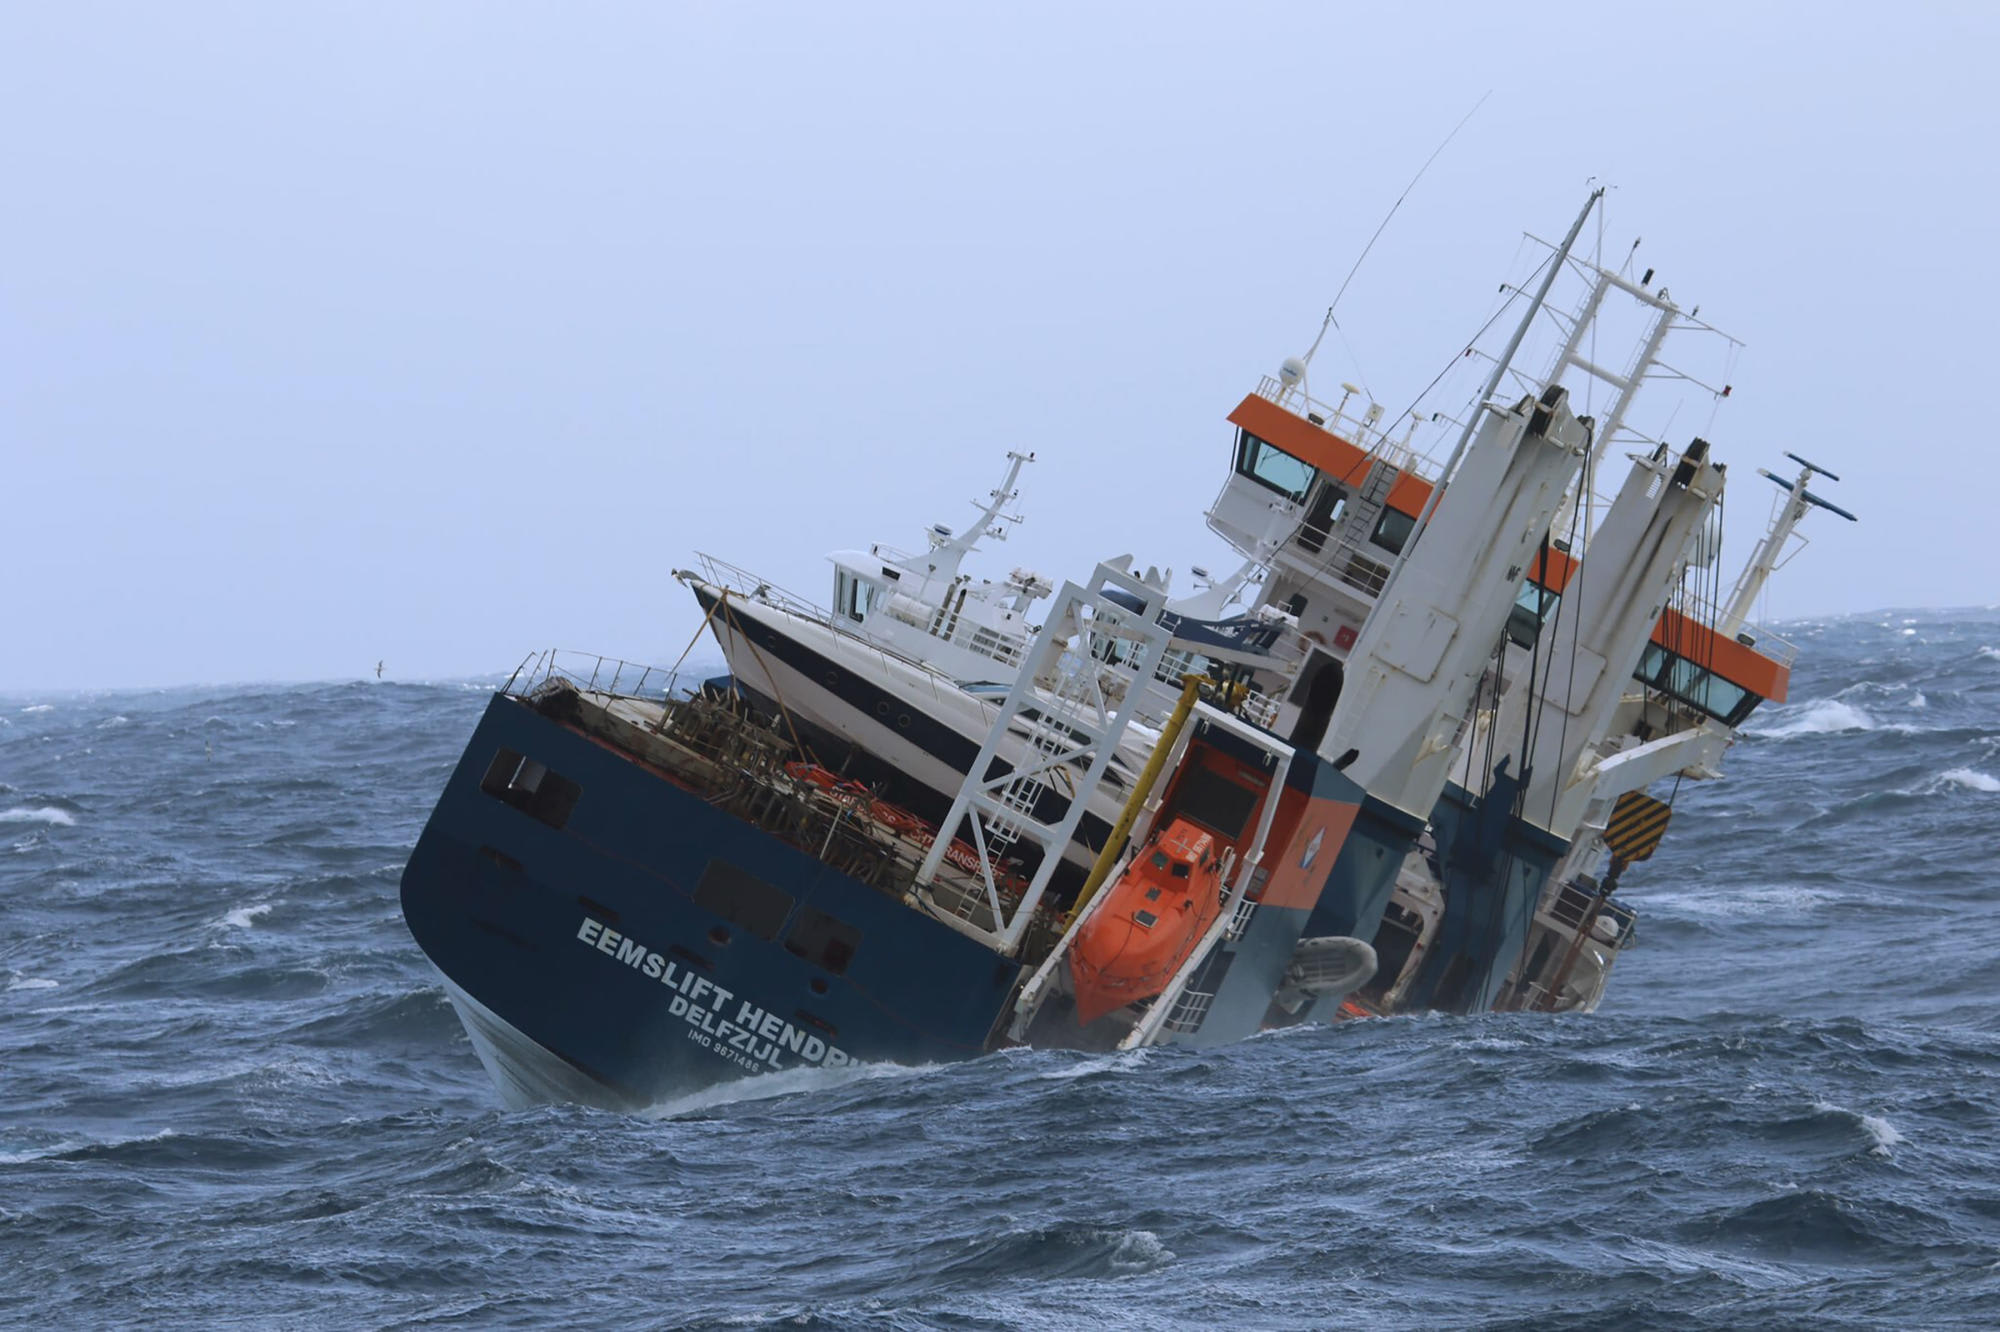 Salvage crews secure drifting Dutch cargo ship off Norway